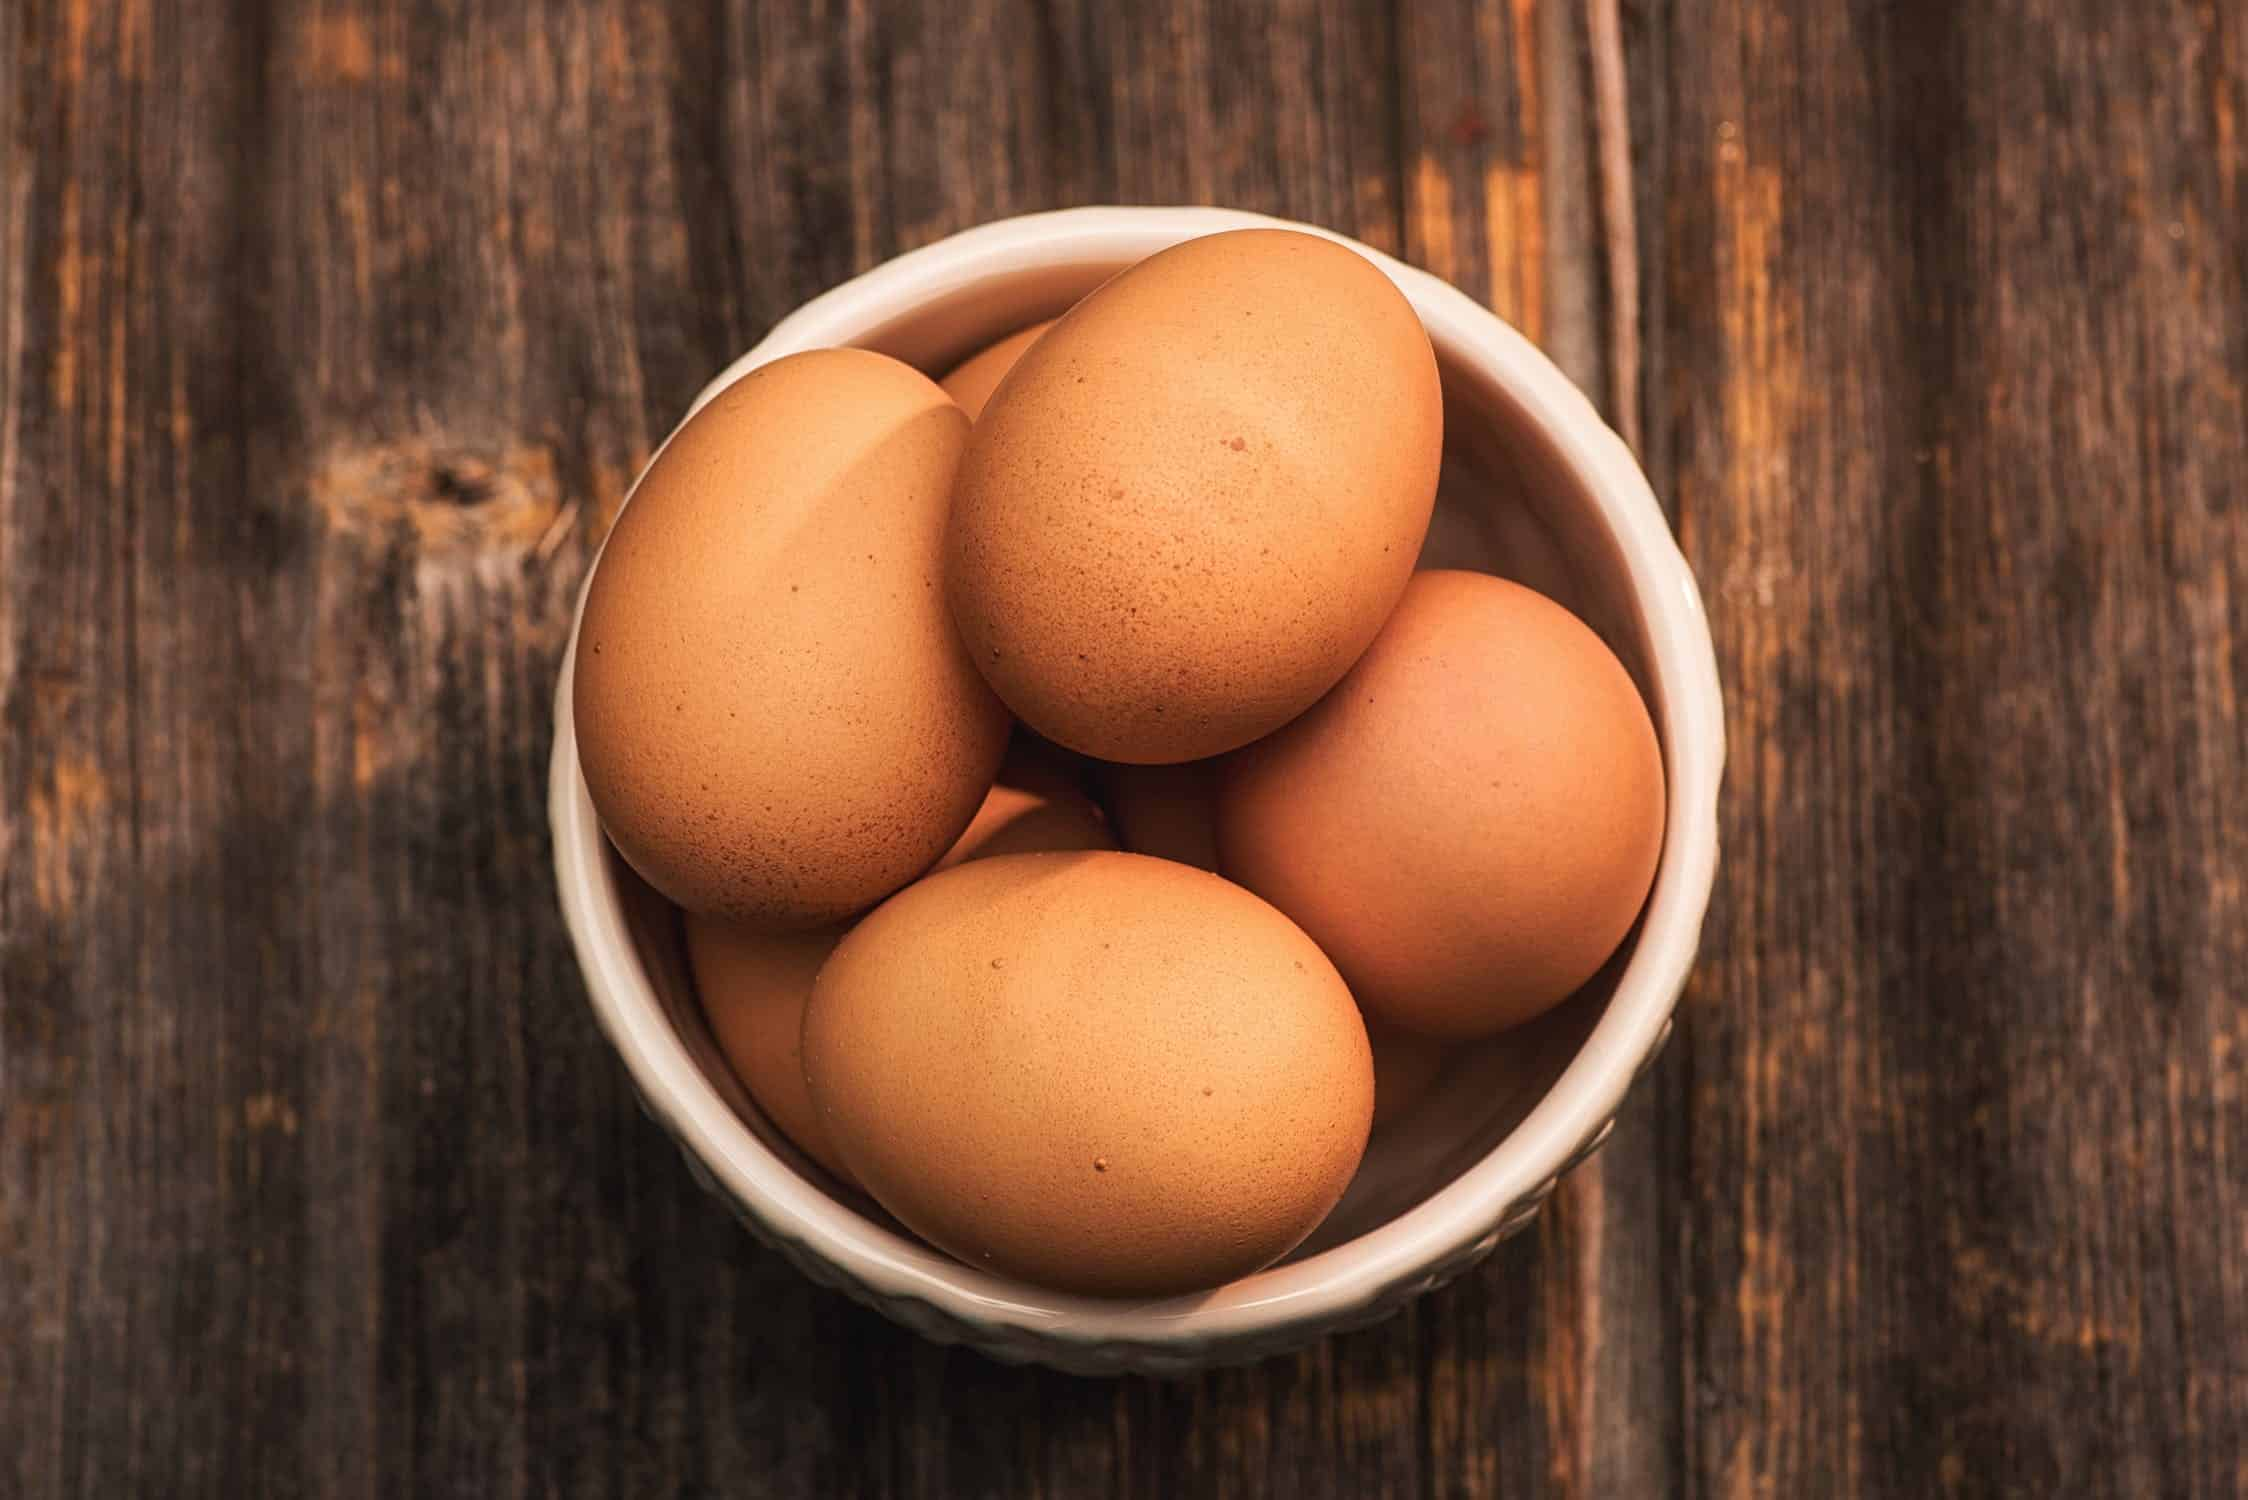 feed-the-birds-kitchen-scraps-8-eggs